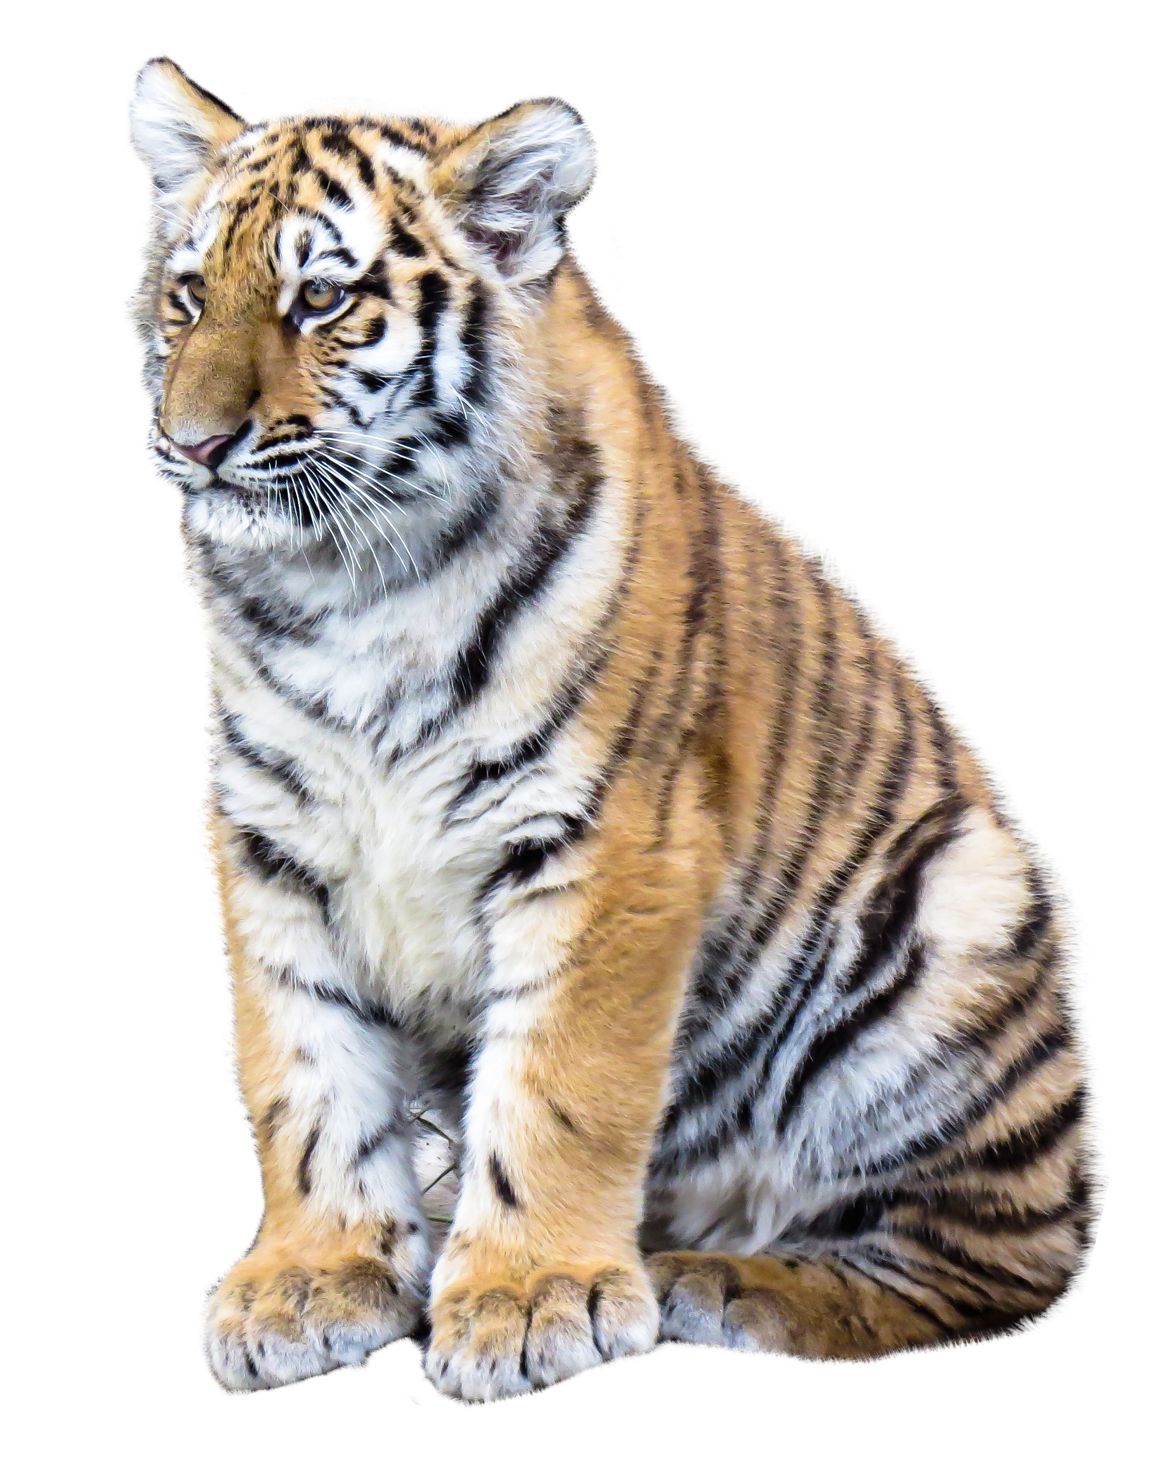 tiger png transparent image pngpix